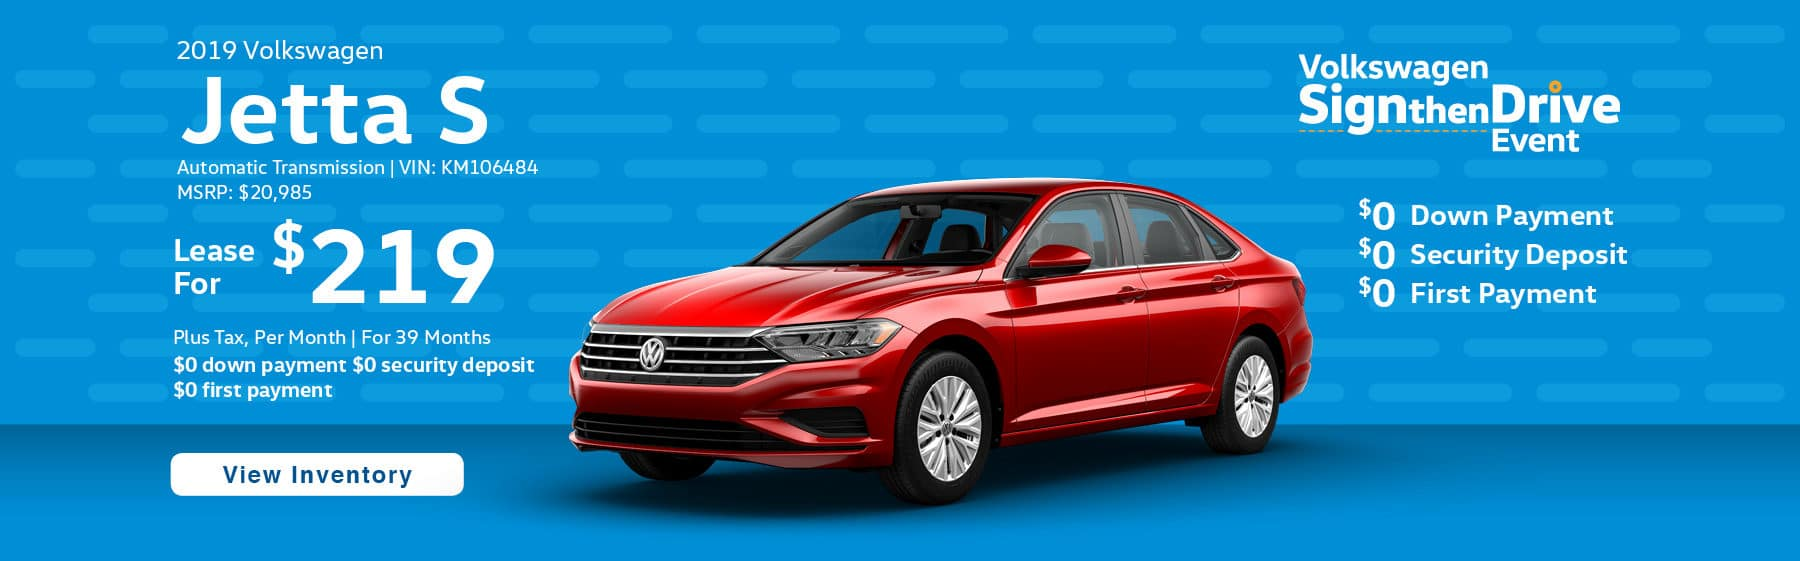 Lease the 2019 Volkswagen Jetta S for $219 plus tax for 39 months. $0 Down payment required.